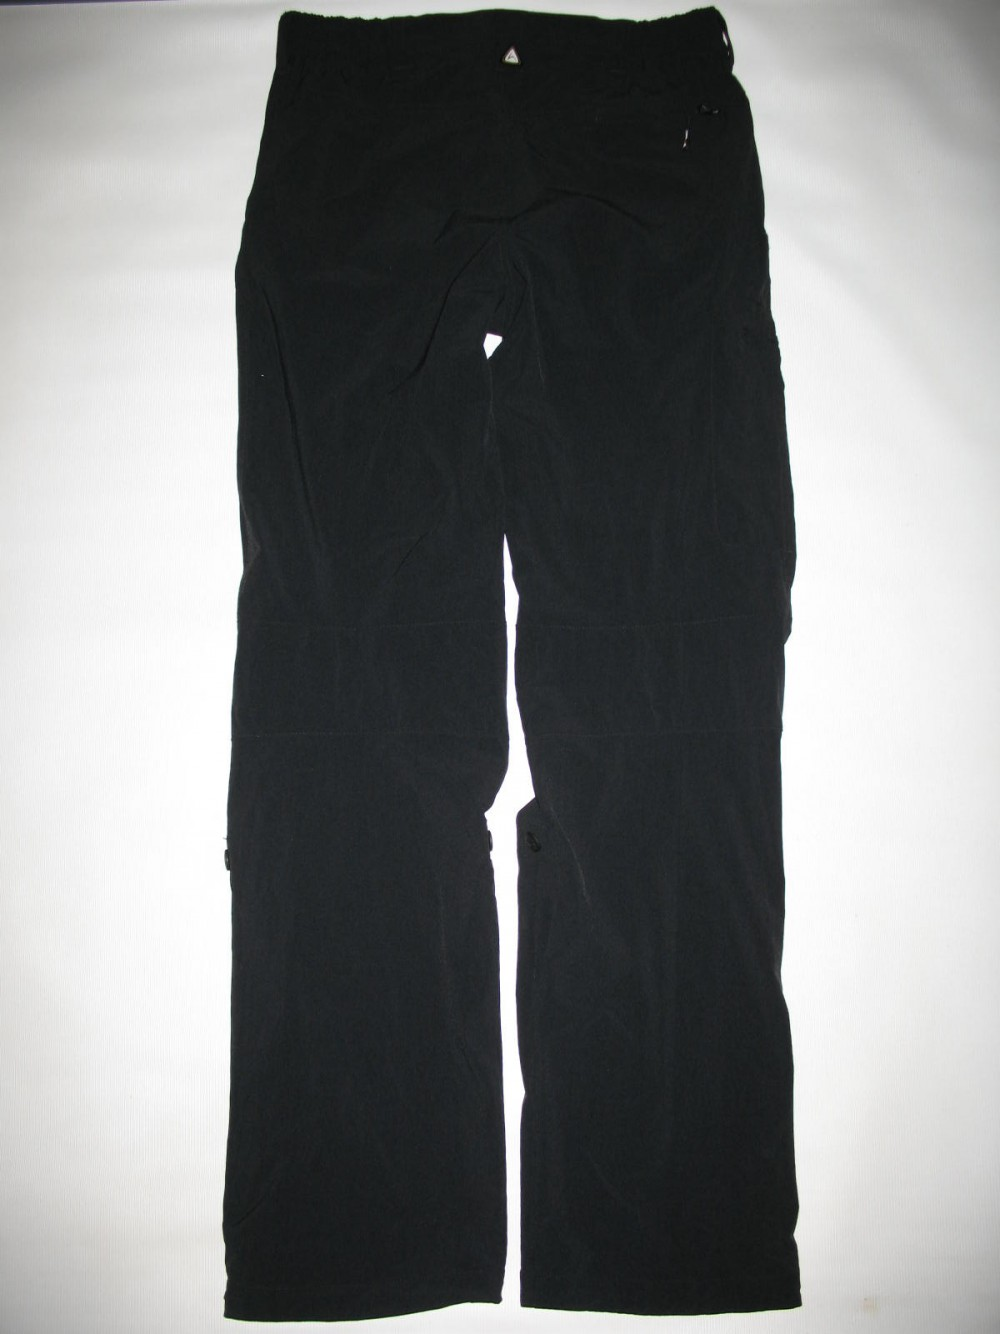 Штаны HICKORY outdoor pants (размер L) - 3